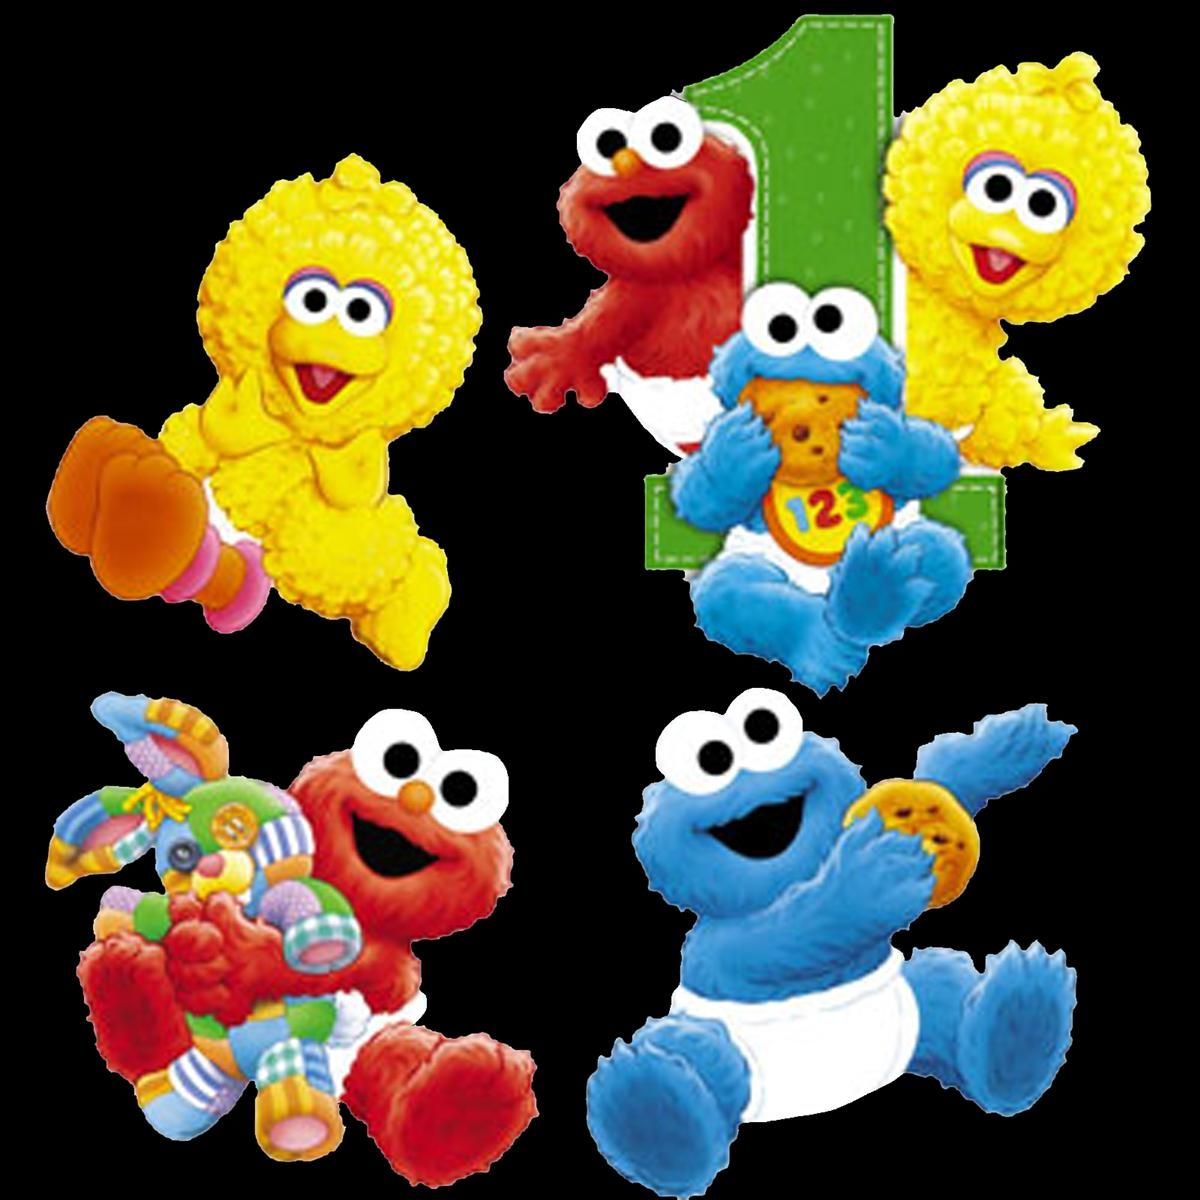 I Love The Baby Sesame Street Characters